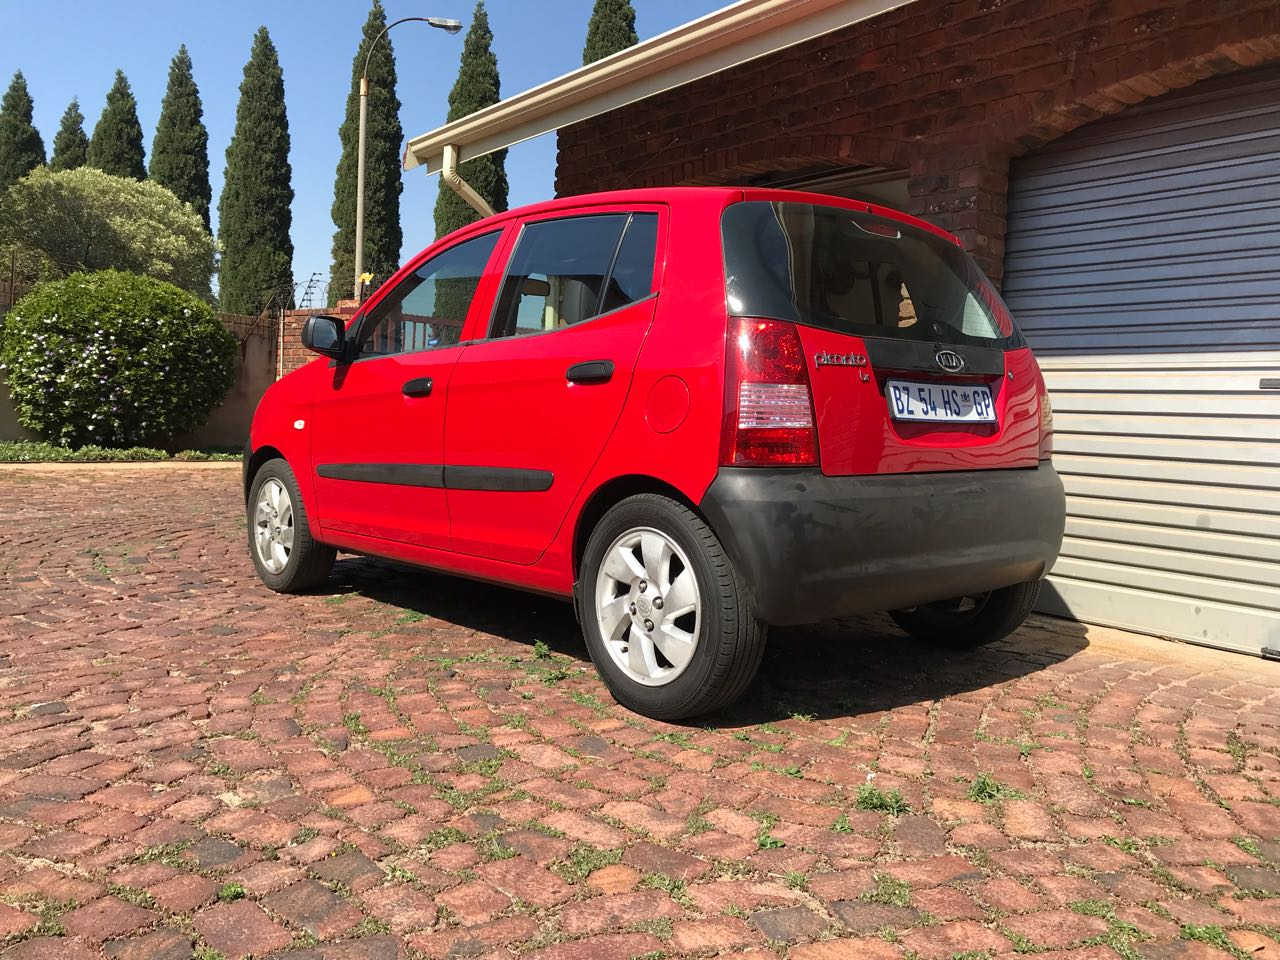 Beautiful Stunning Cherry Red 2005 Kia Picanto 1.1L LX Hatchback, Well Maintained & looked after car for Sale..